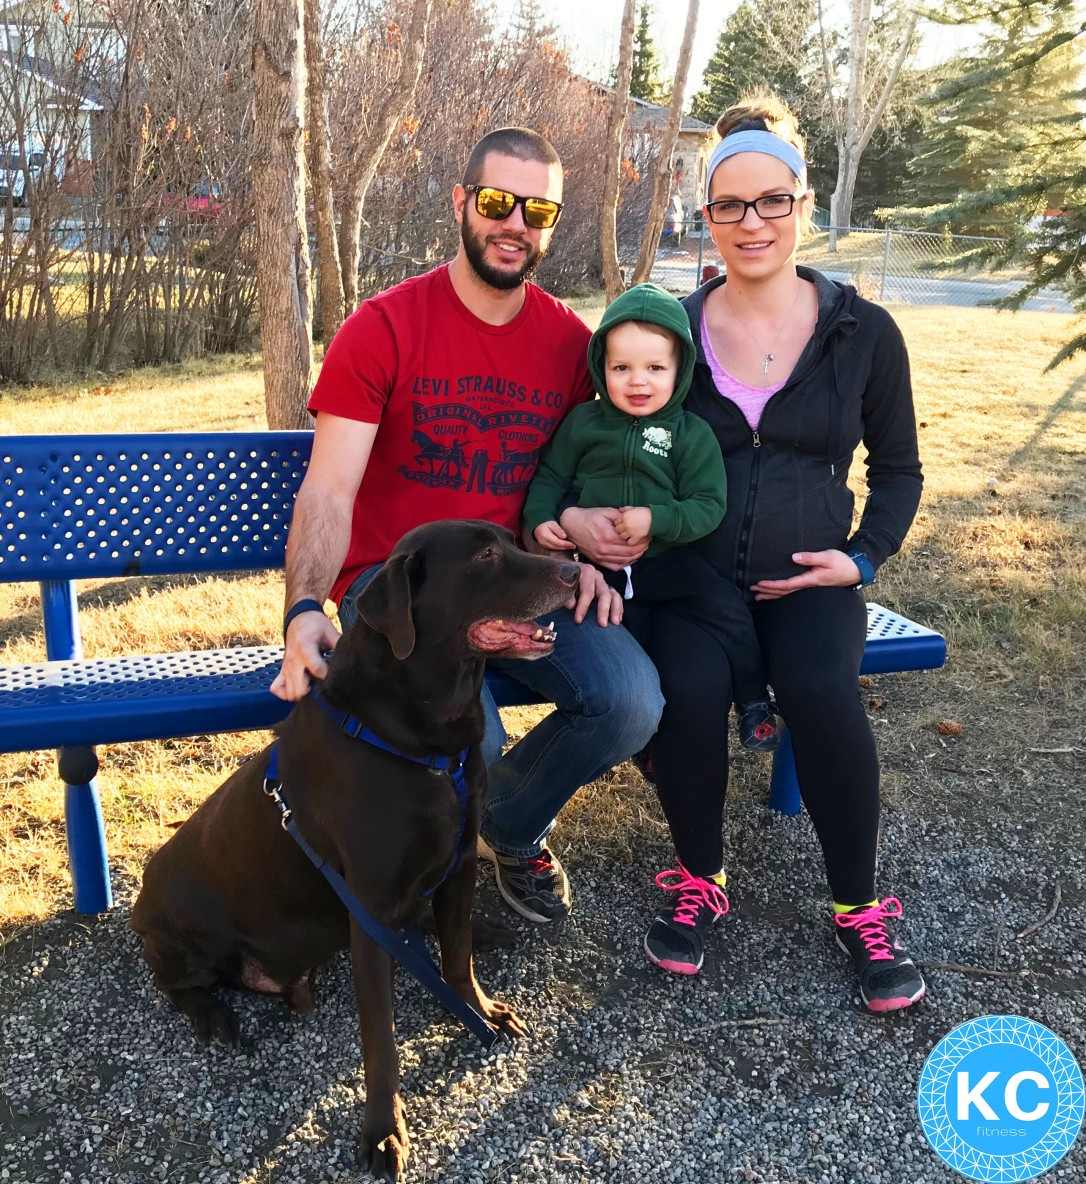 family of 3 KCFITNESS